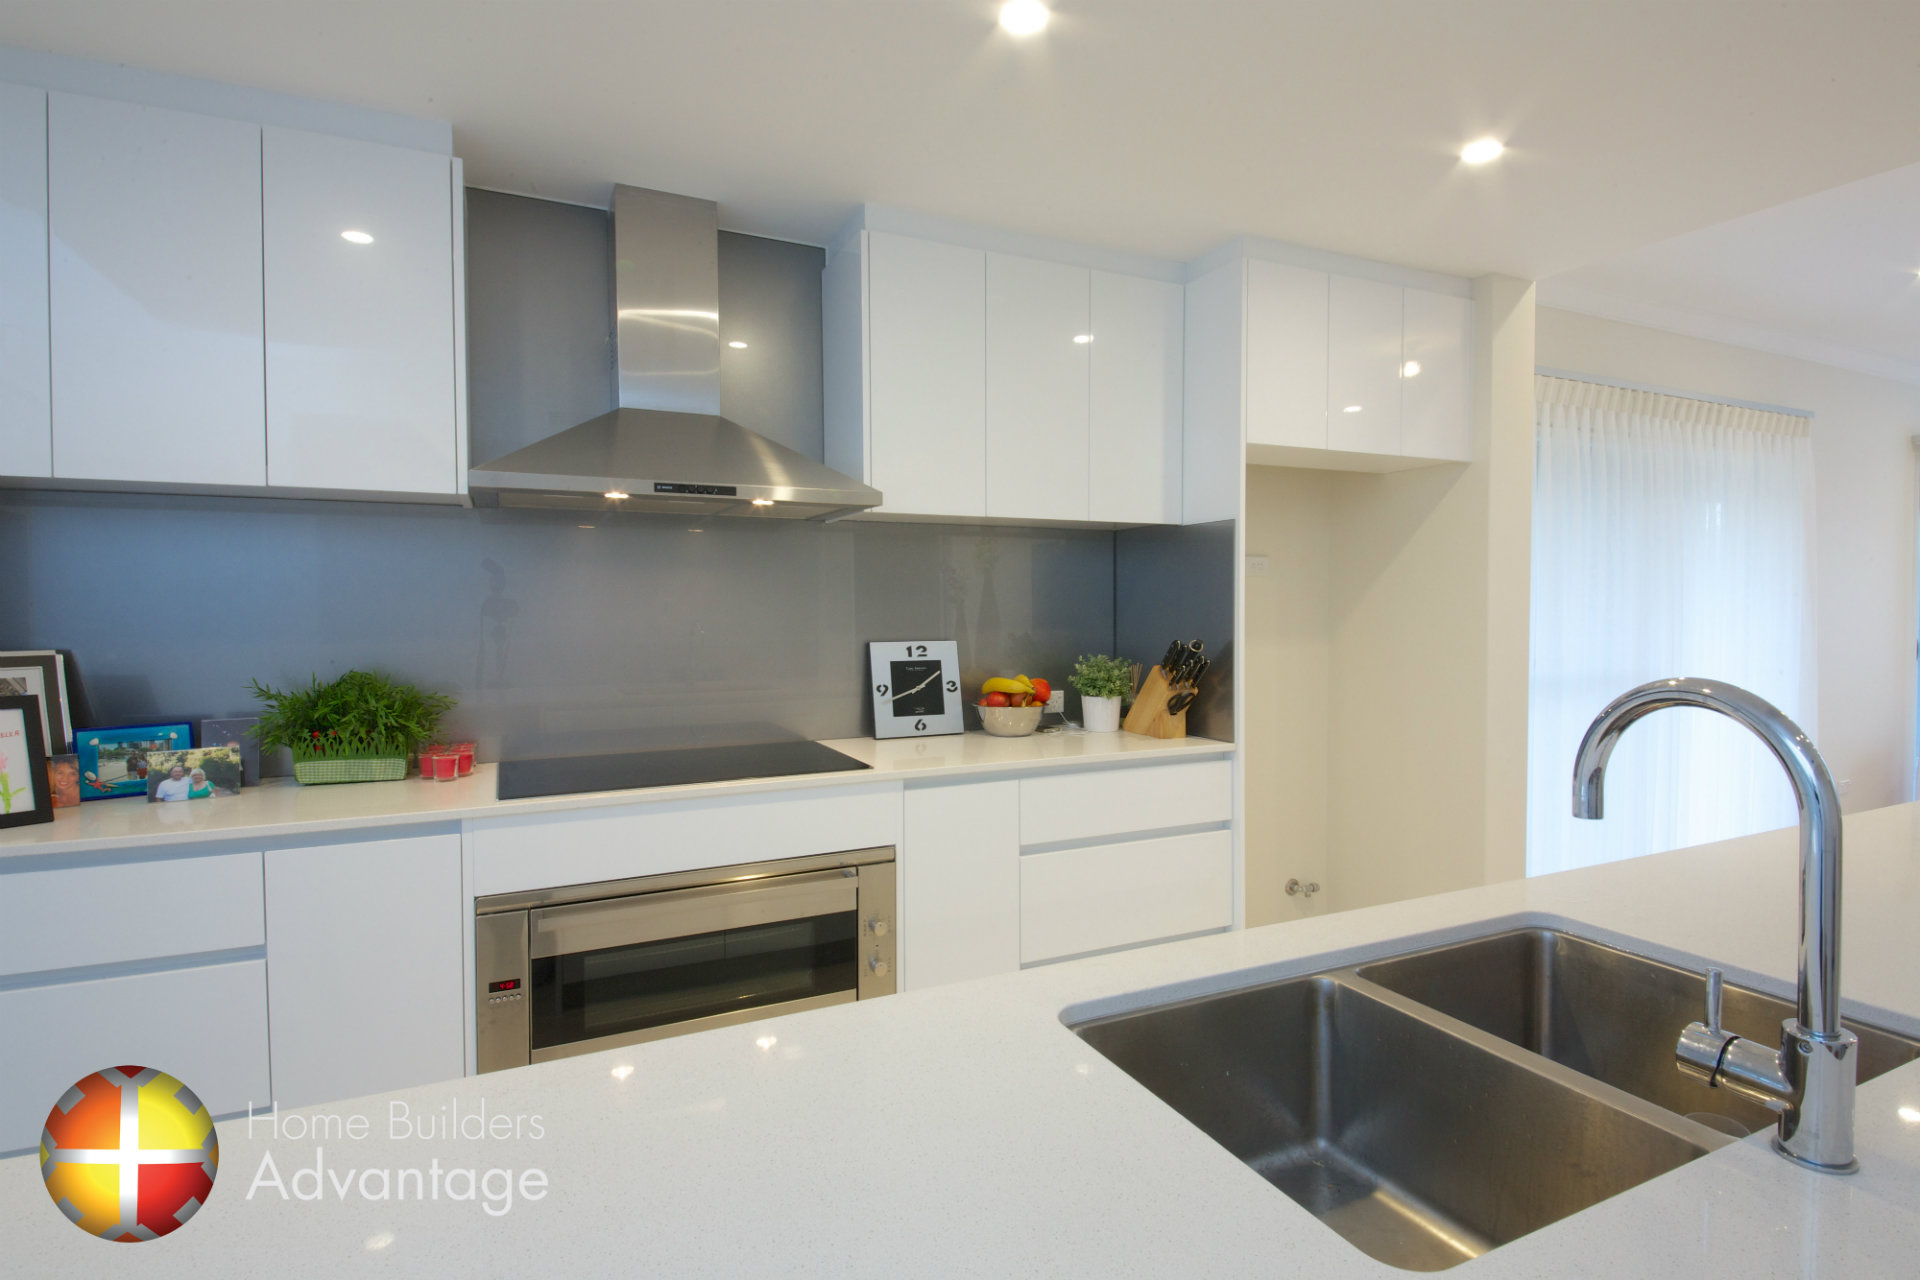 modern kitchen designs perth kitchen designers perth image to u 89160